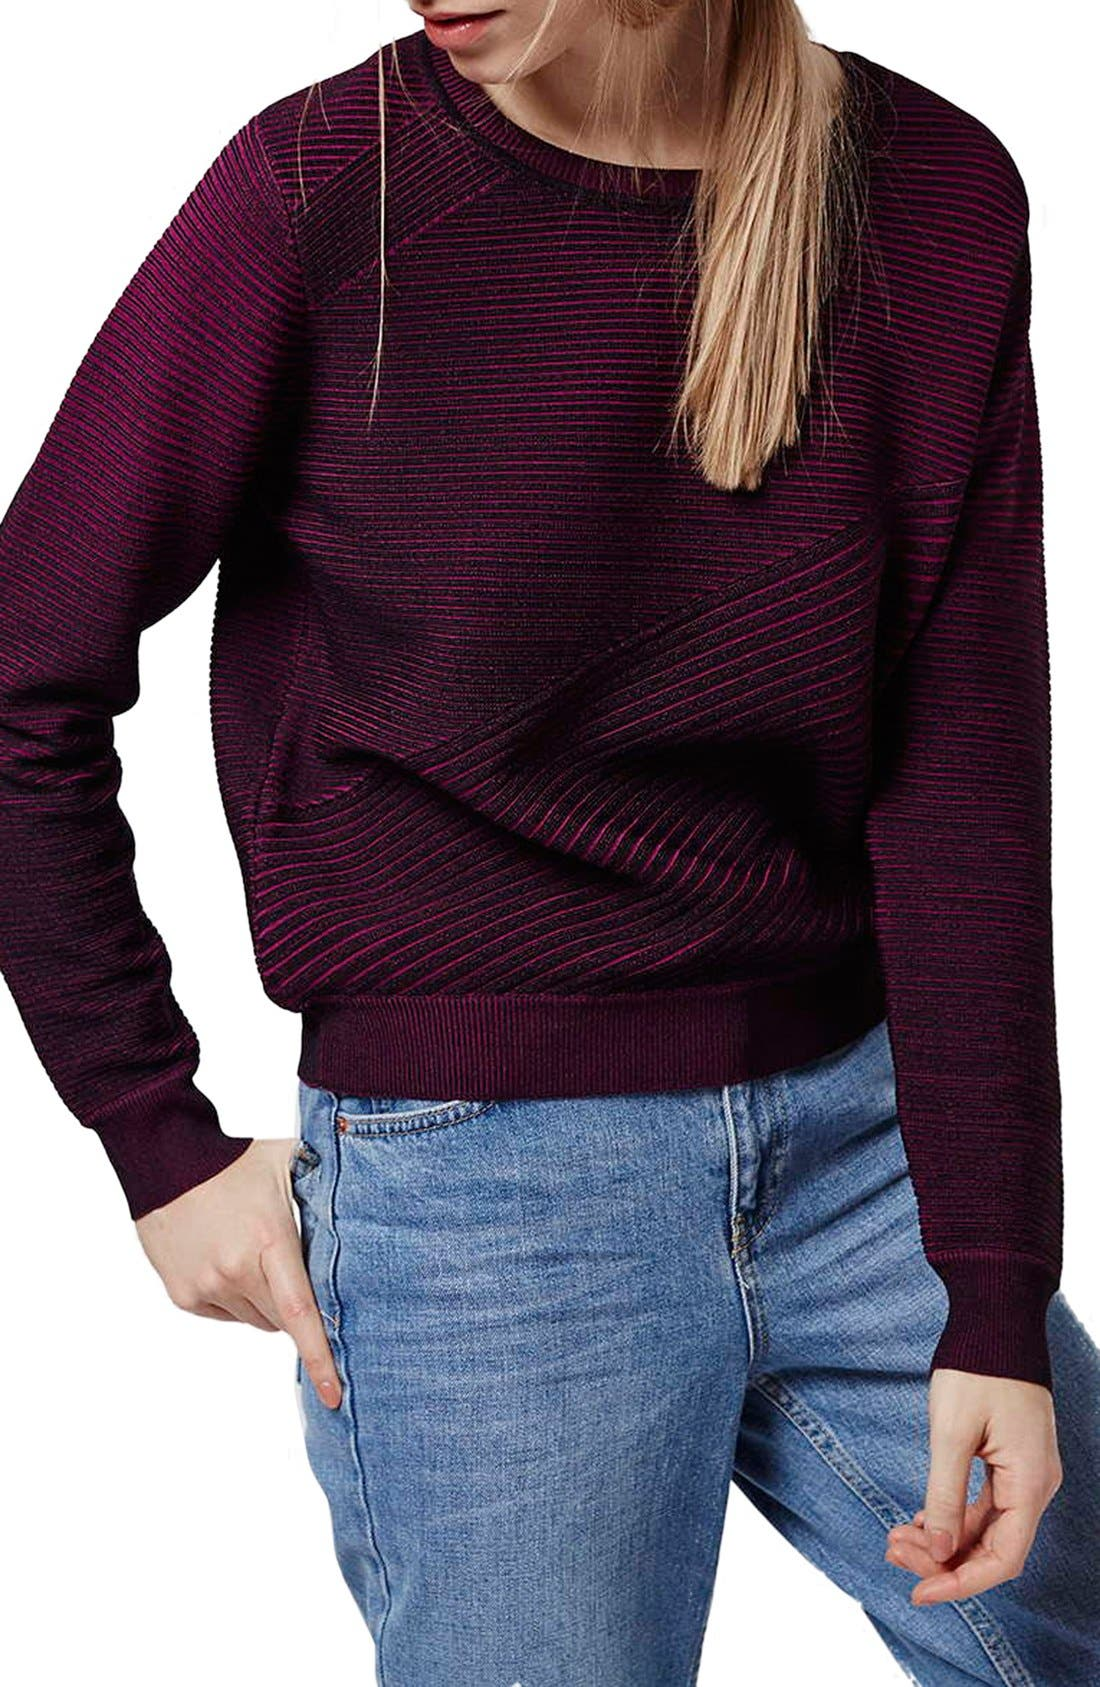 Alternate Image 1 Selected - Topshop Ribbed Sweater with Elbow Patches